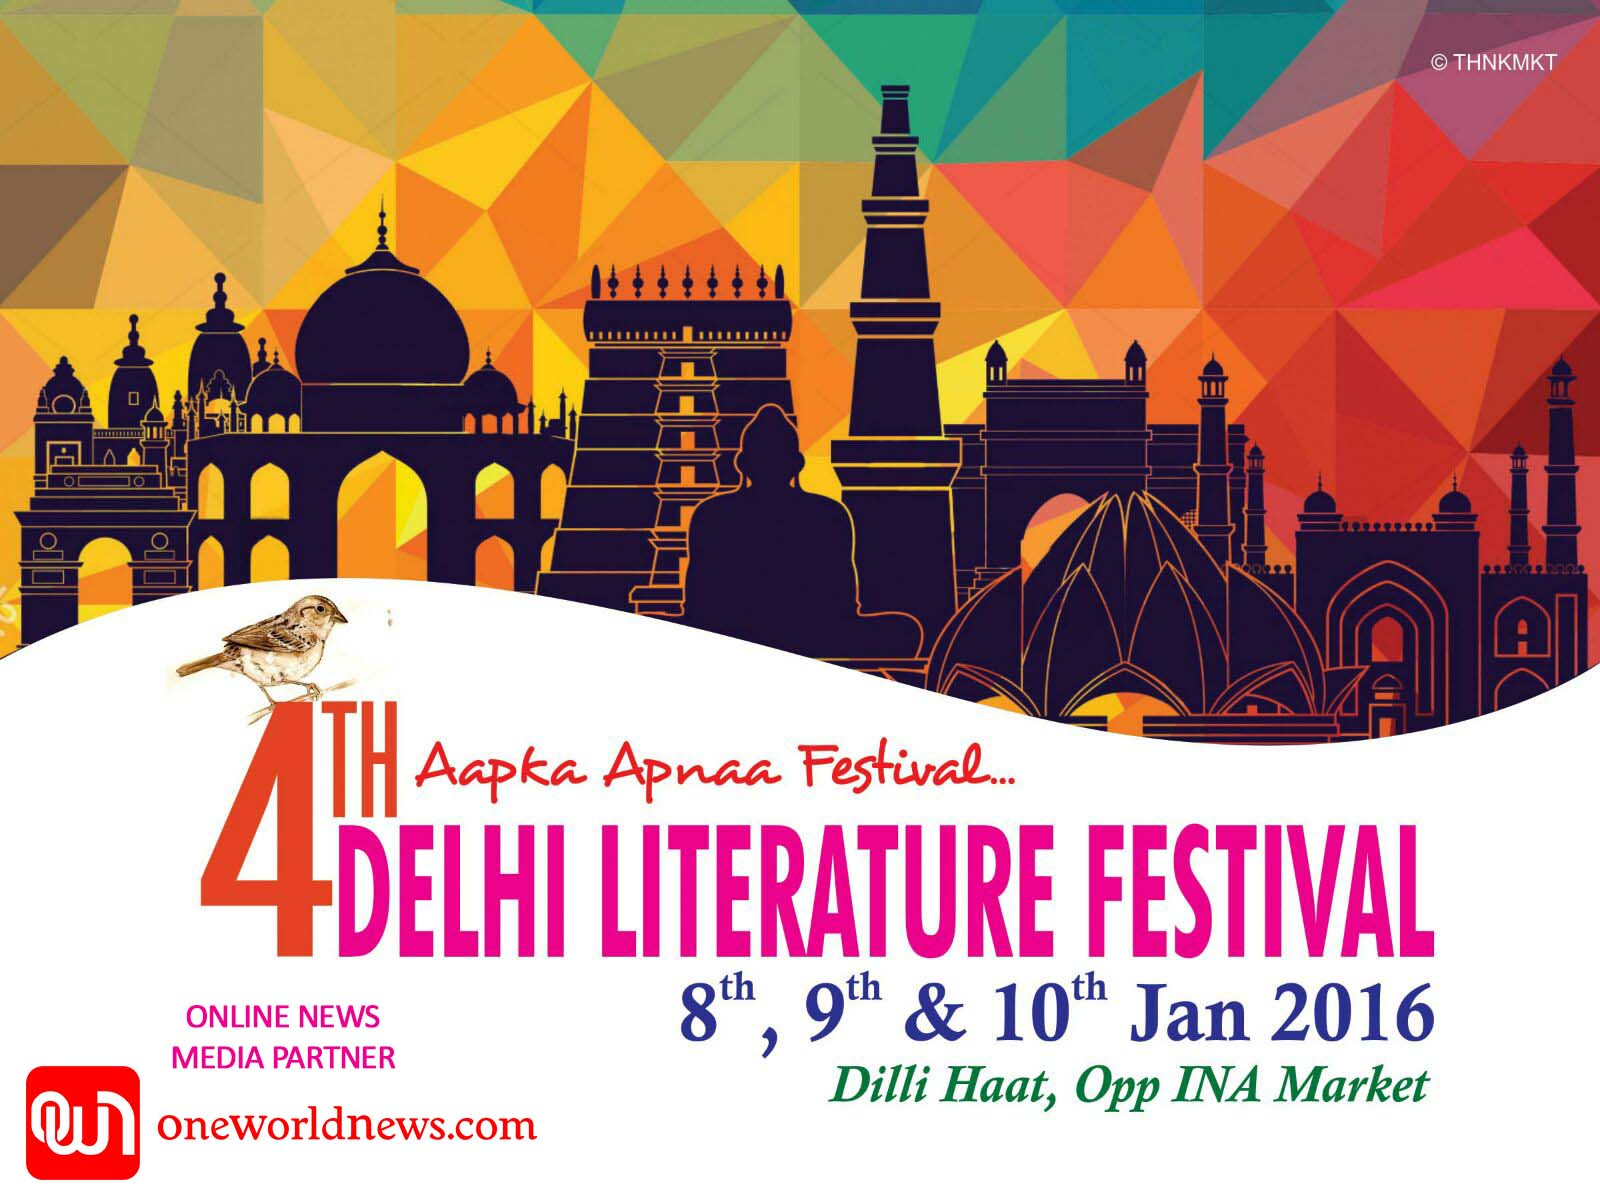 4th DELHI LITERATURE FESTIVAL